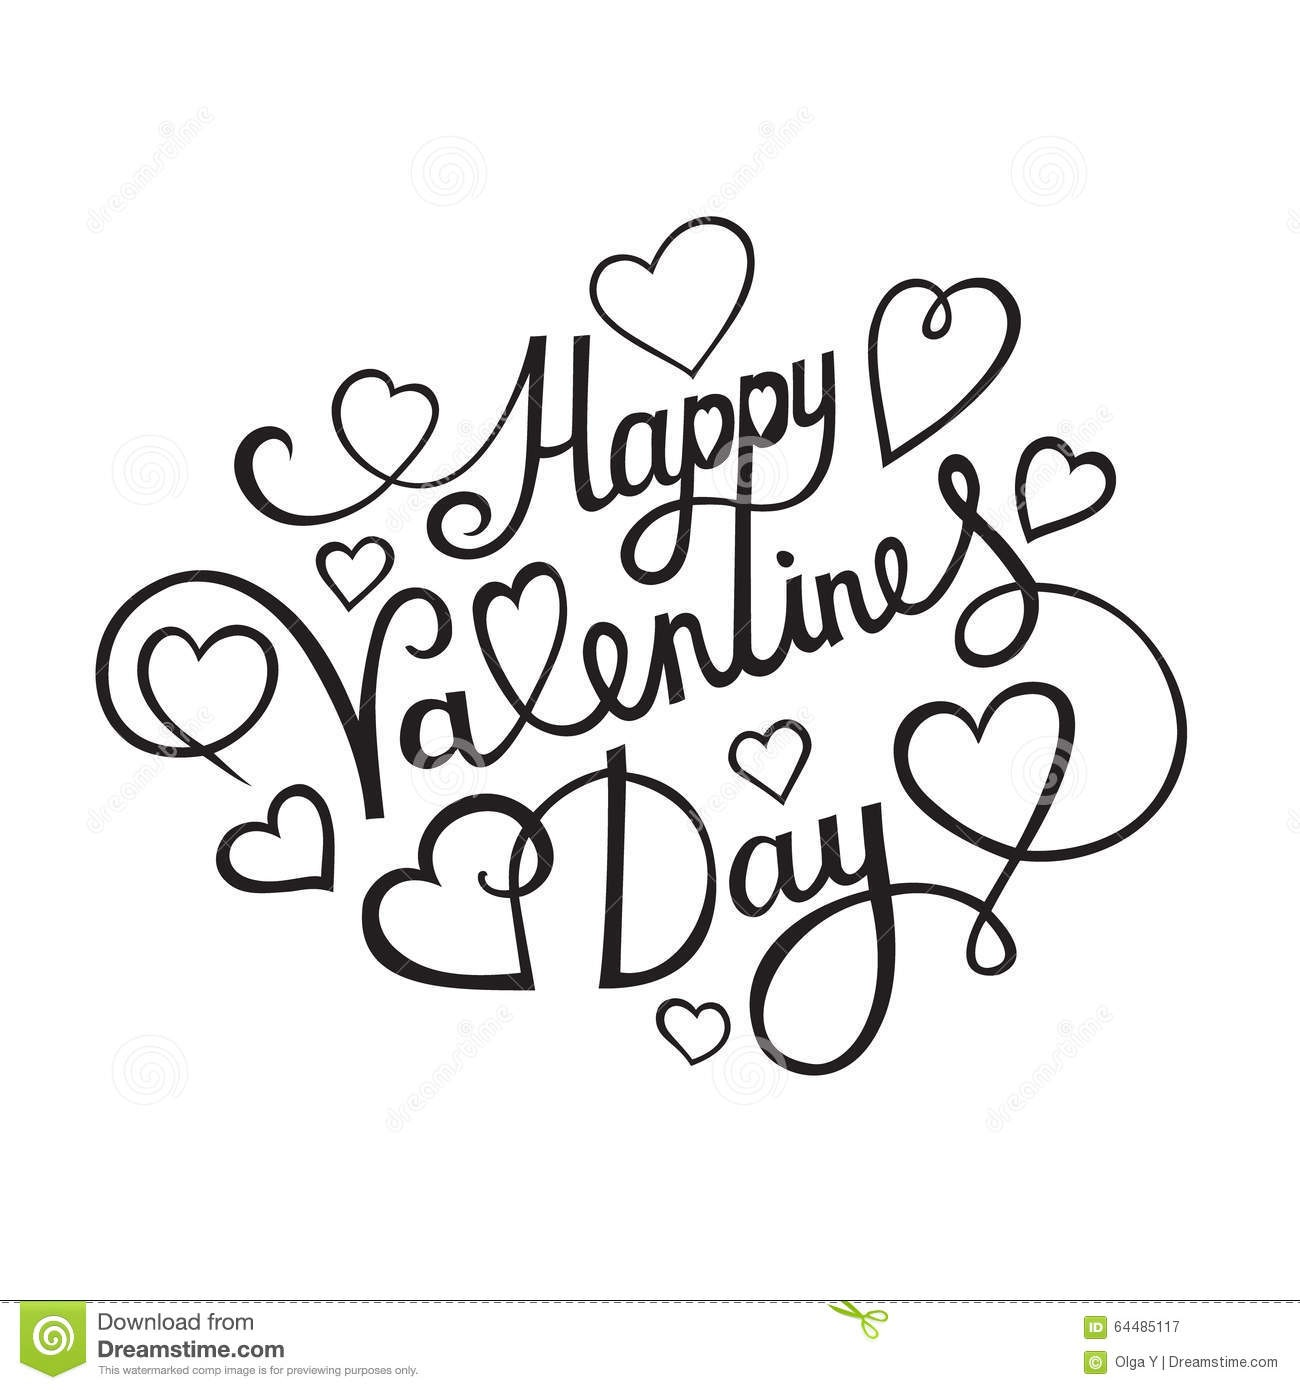 Happy Valentines Day Clipart Black And White.